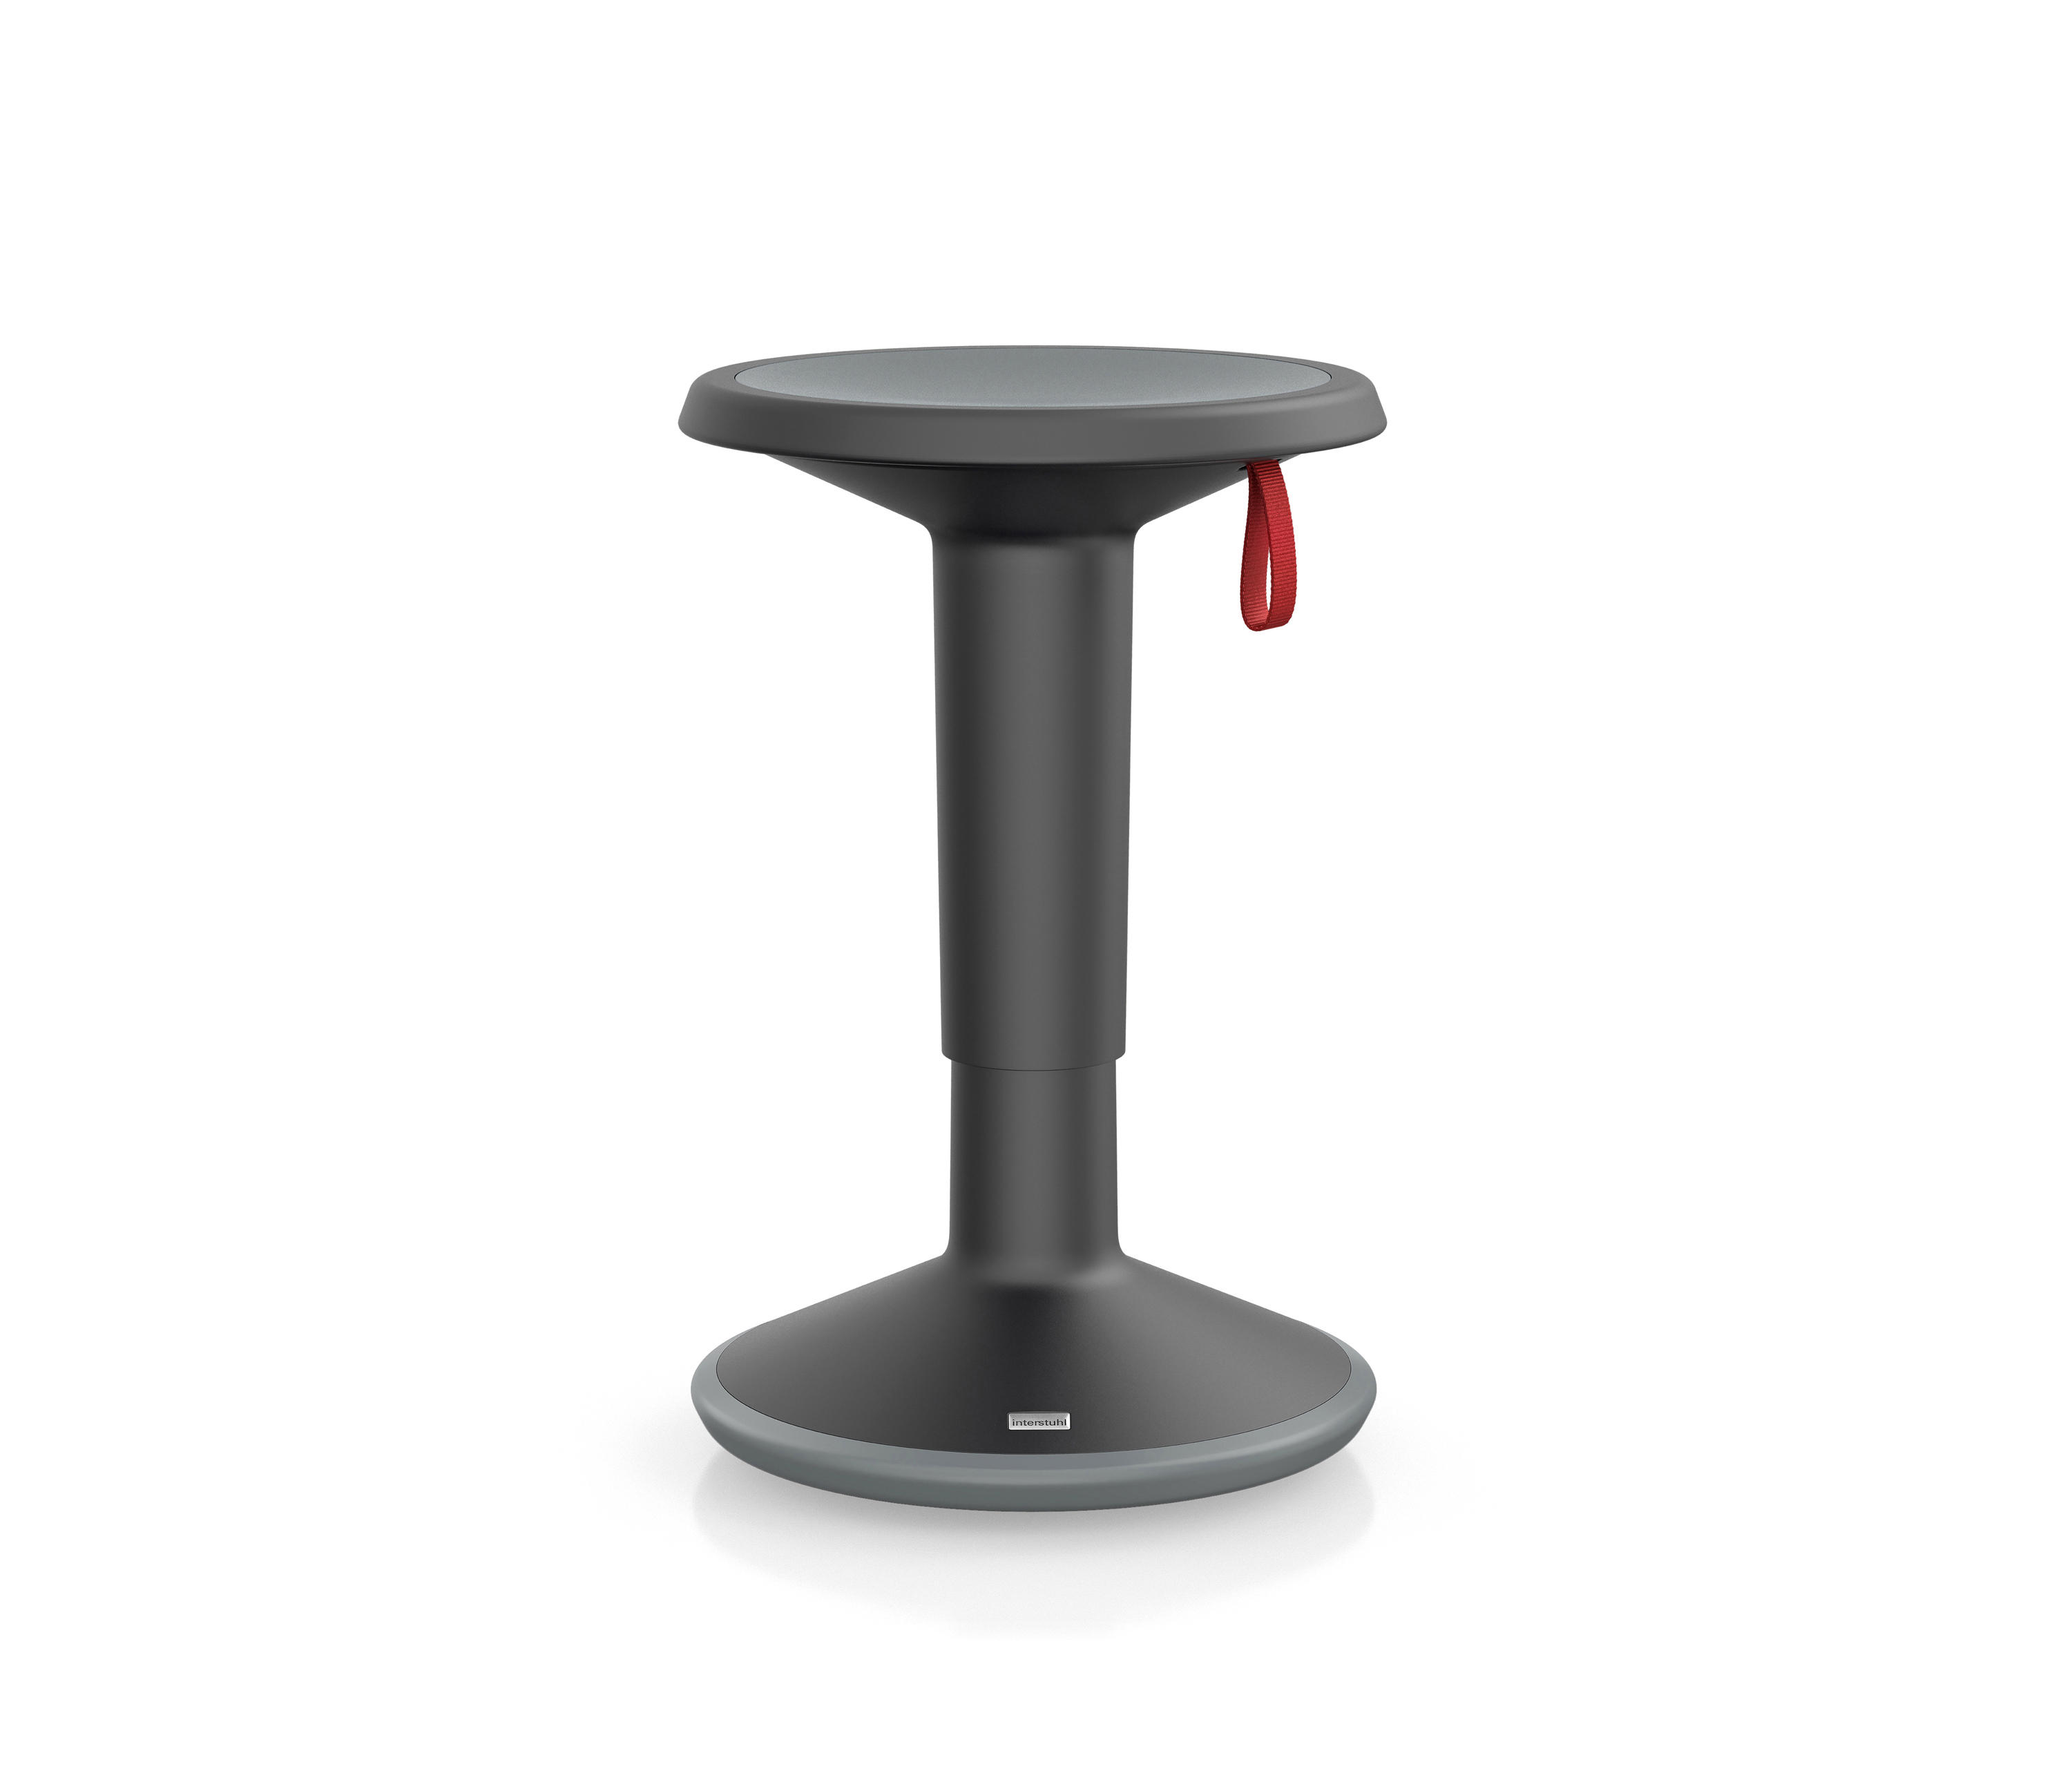 UPIS1 STOOL - Swivel stools from Interstuhl Büromöbel GmbH & Co. KG ...